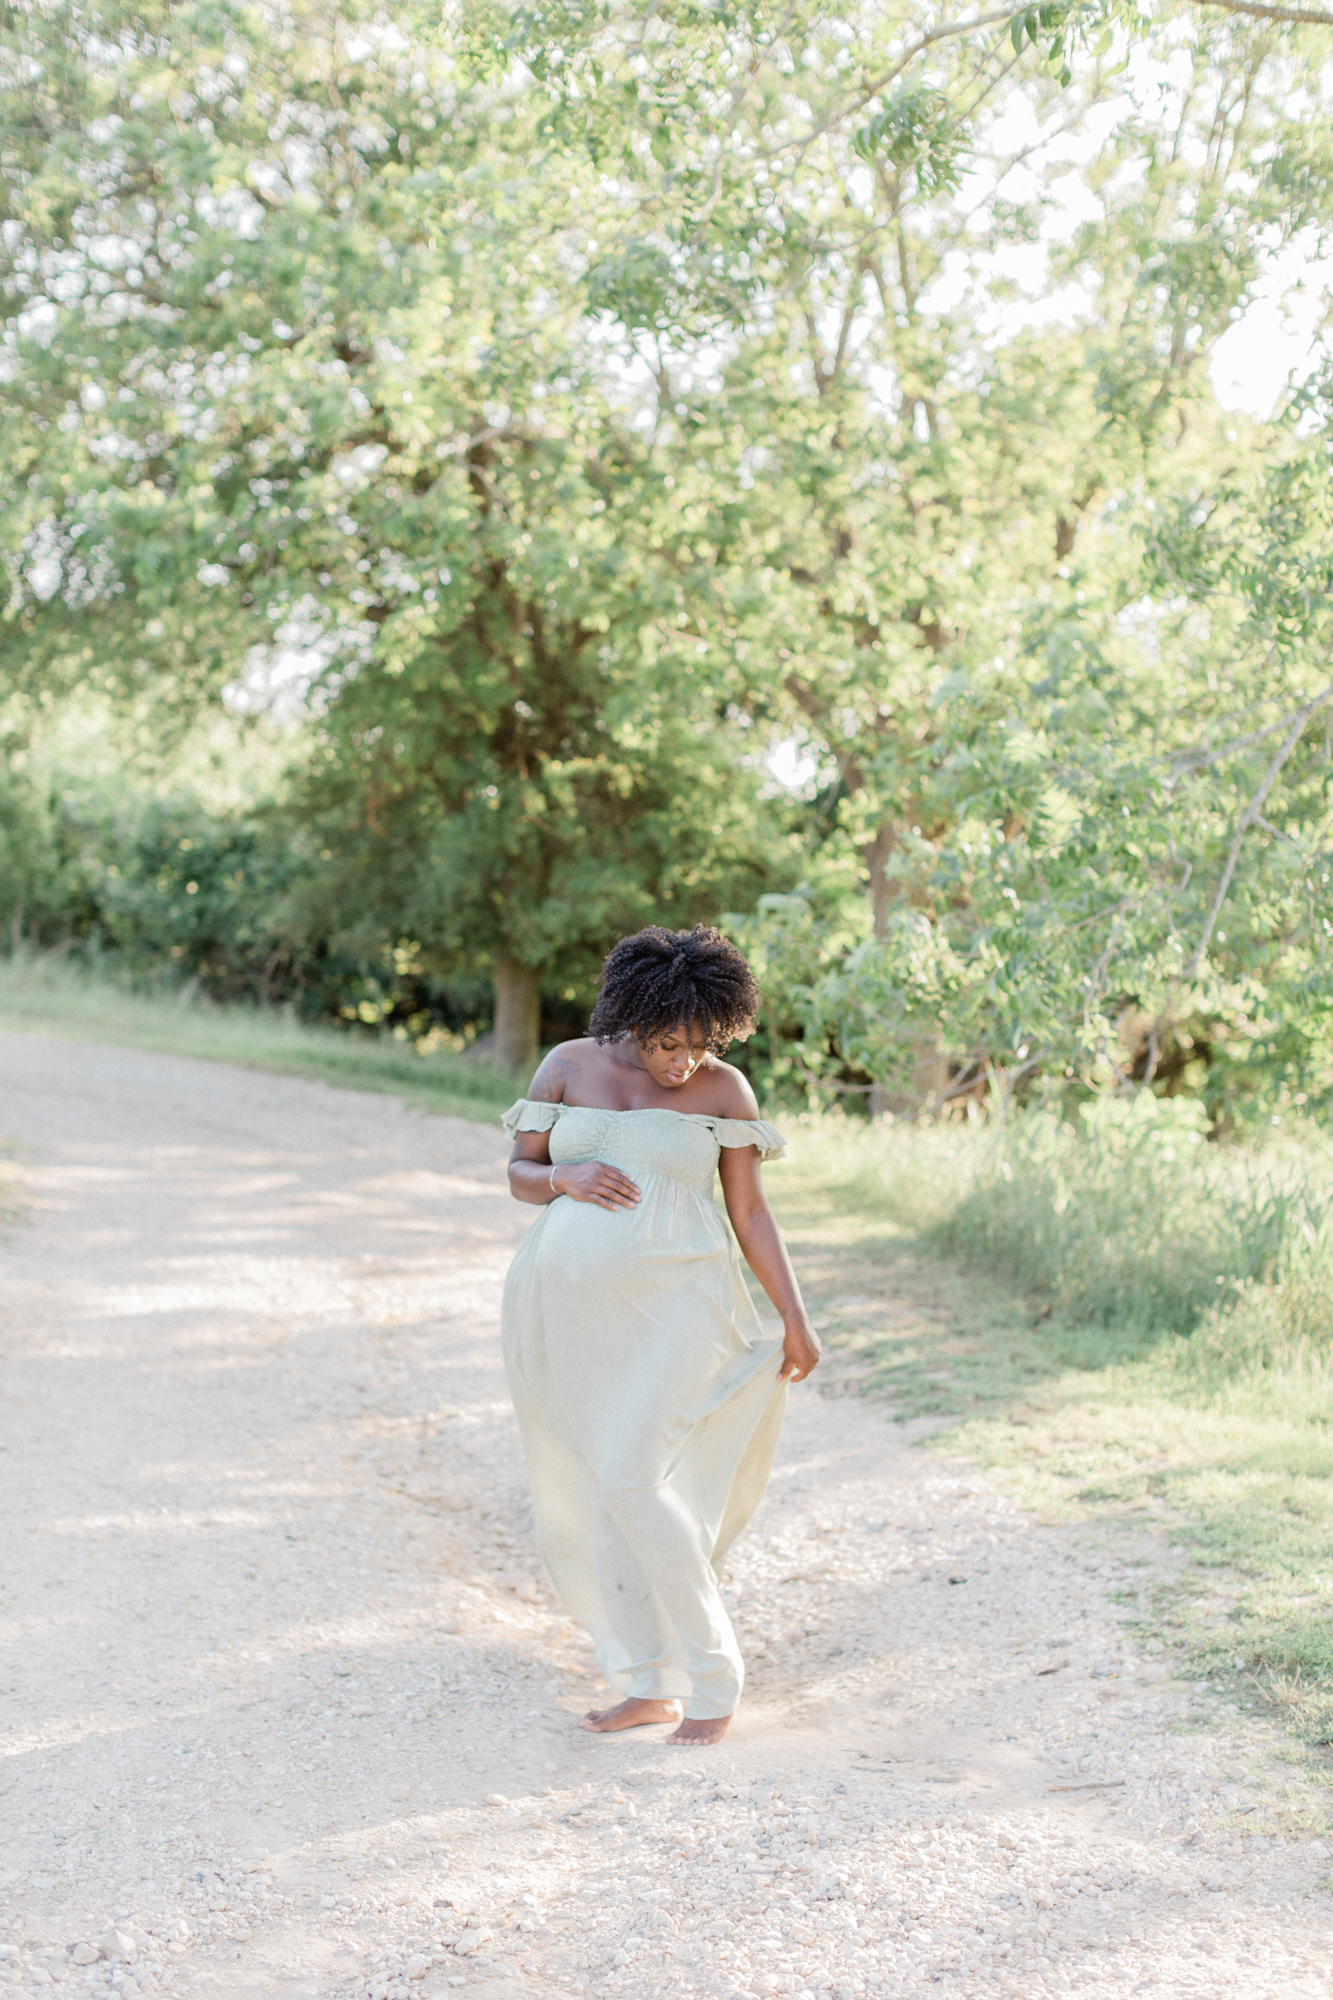 San Antonio Texas Hill Country Austin Maternity Family Photography Photographer Maternity Photos Pictures Session